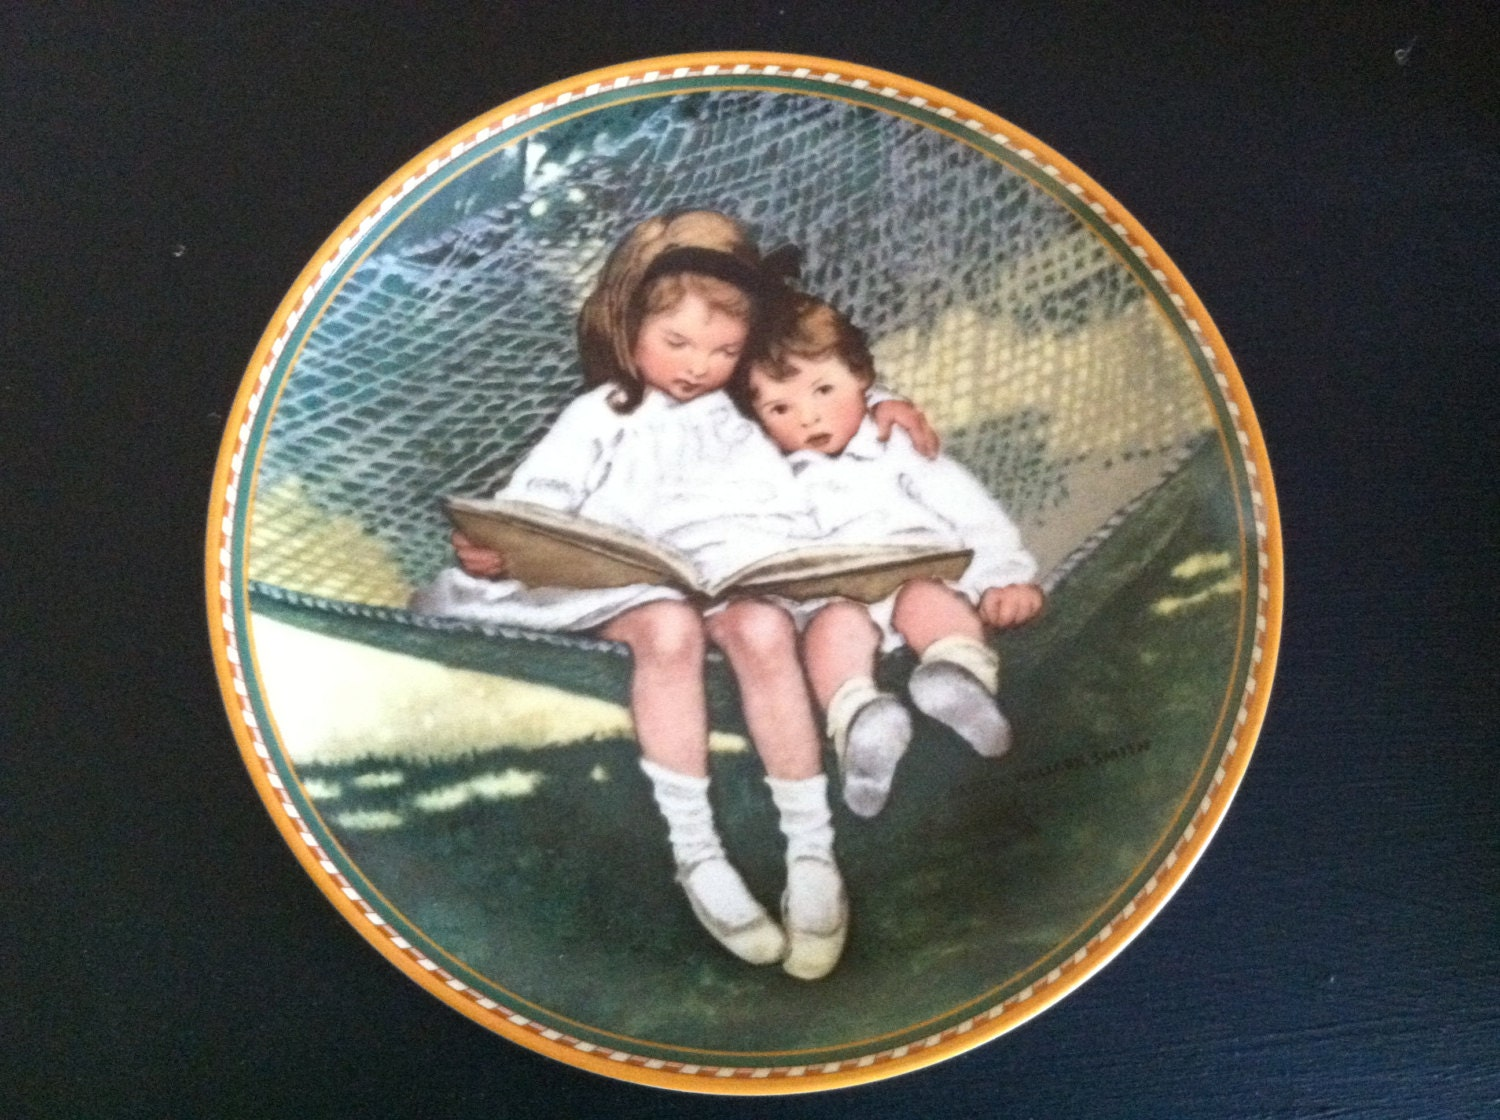 Vintage Story Time Jessie Willcox Smith Collectible Plate - 4evrVintage